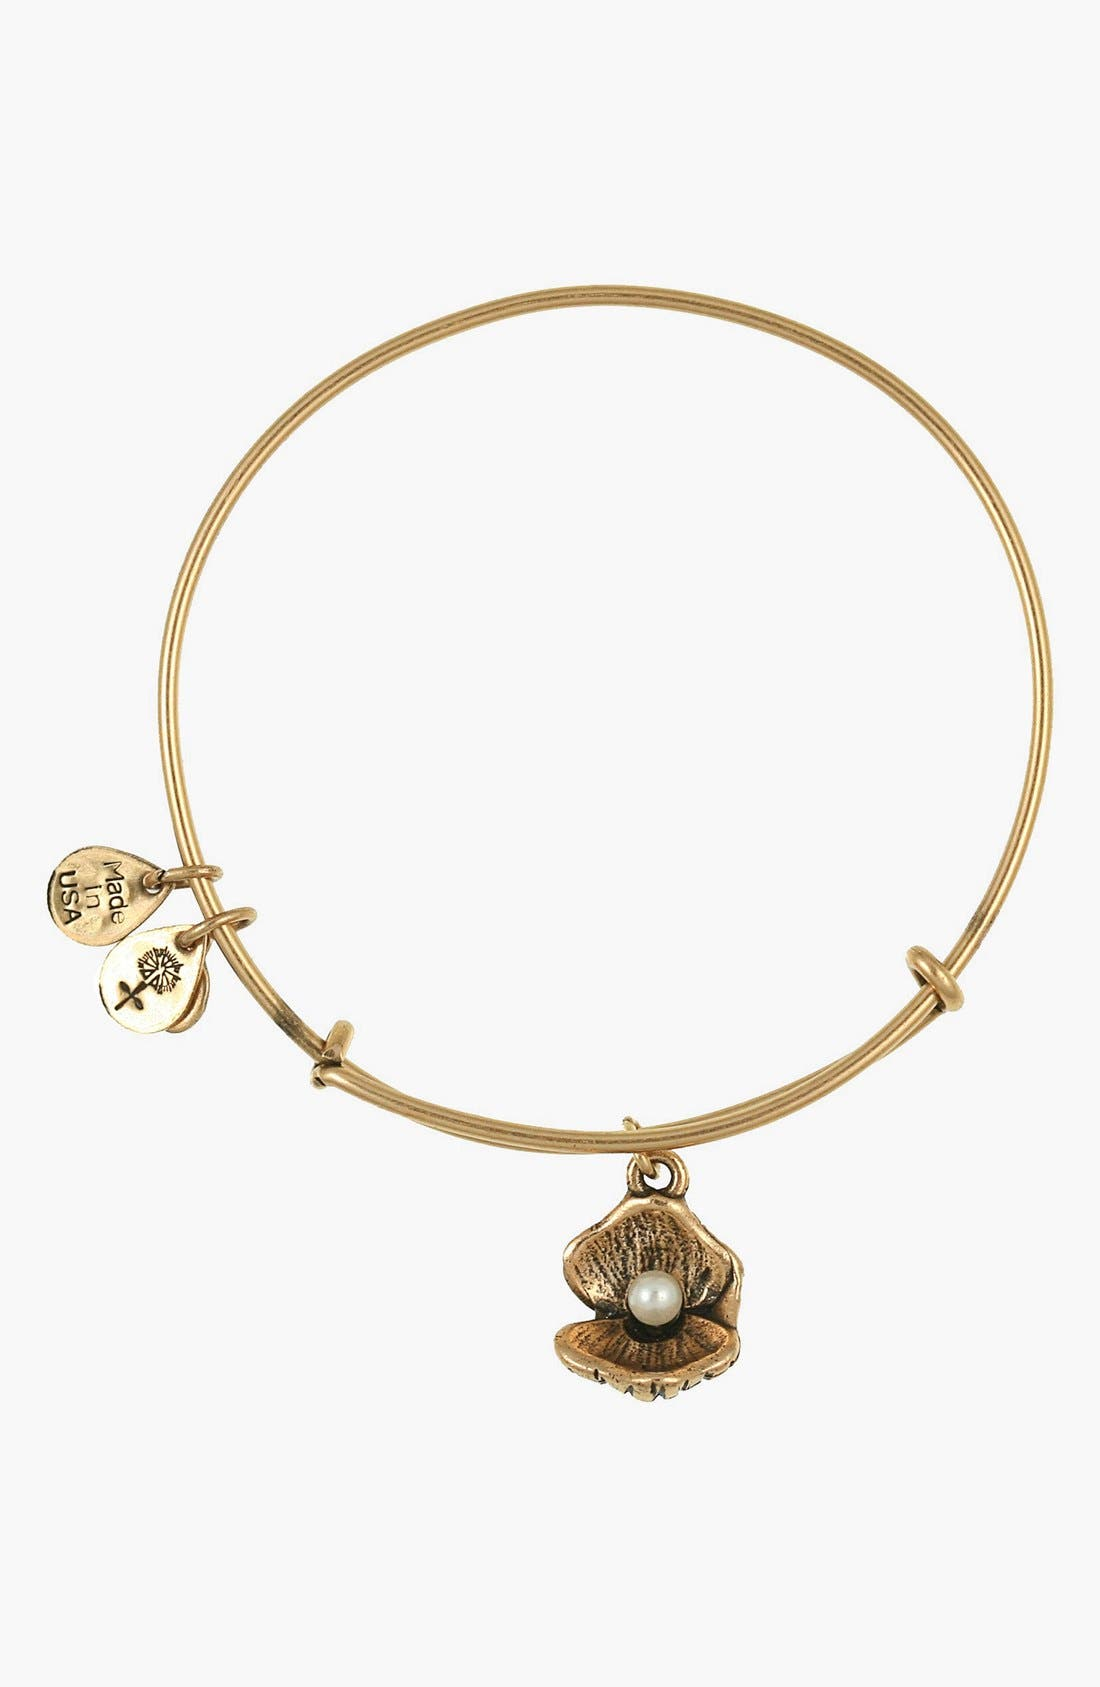 Alternate Image 1 Selected - Alex and Ani 'Oyster' Charm Expandable Bangle